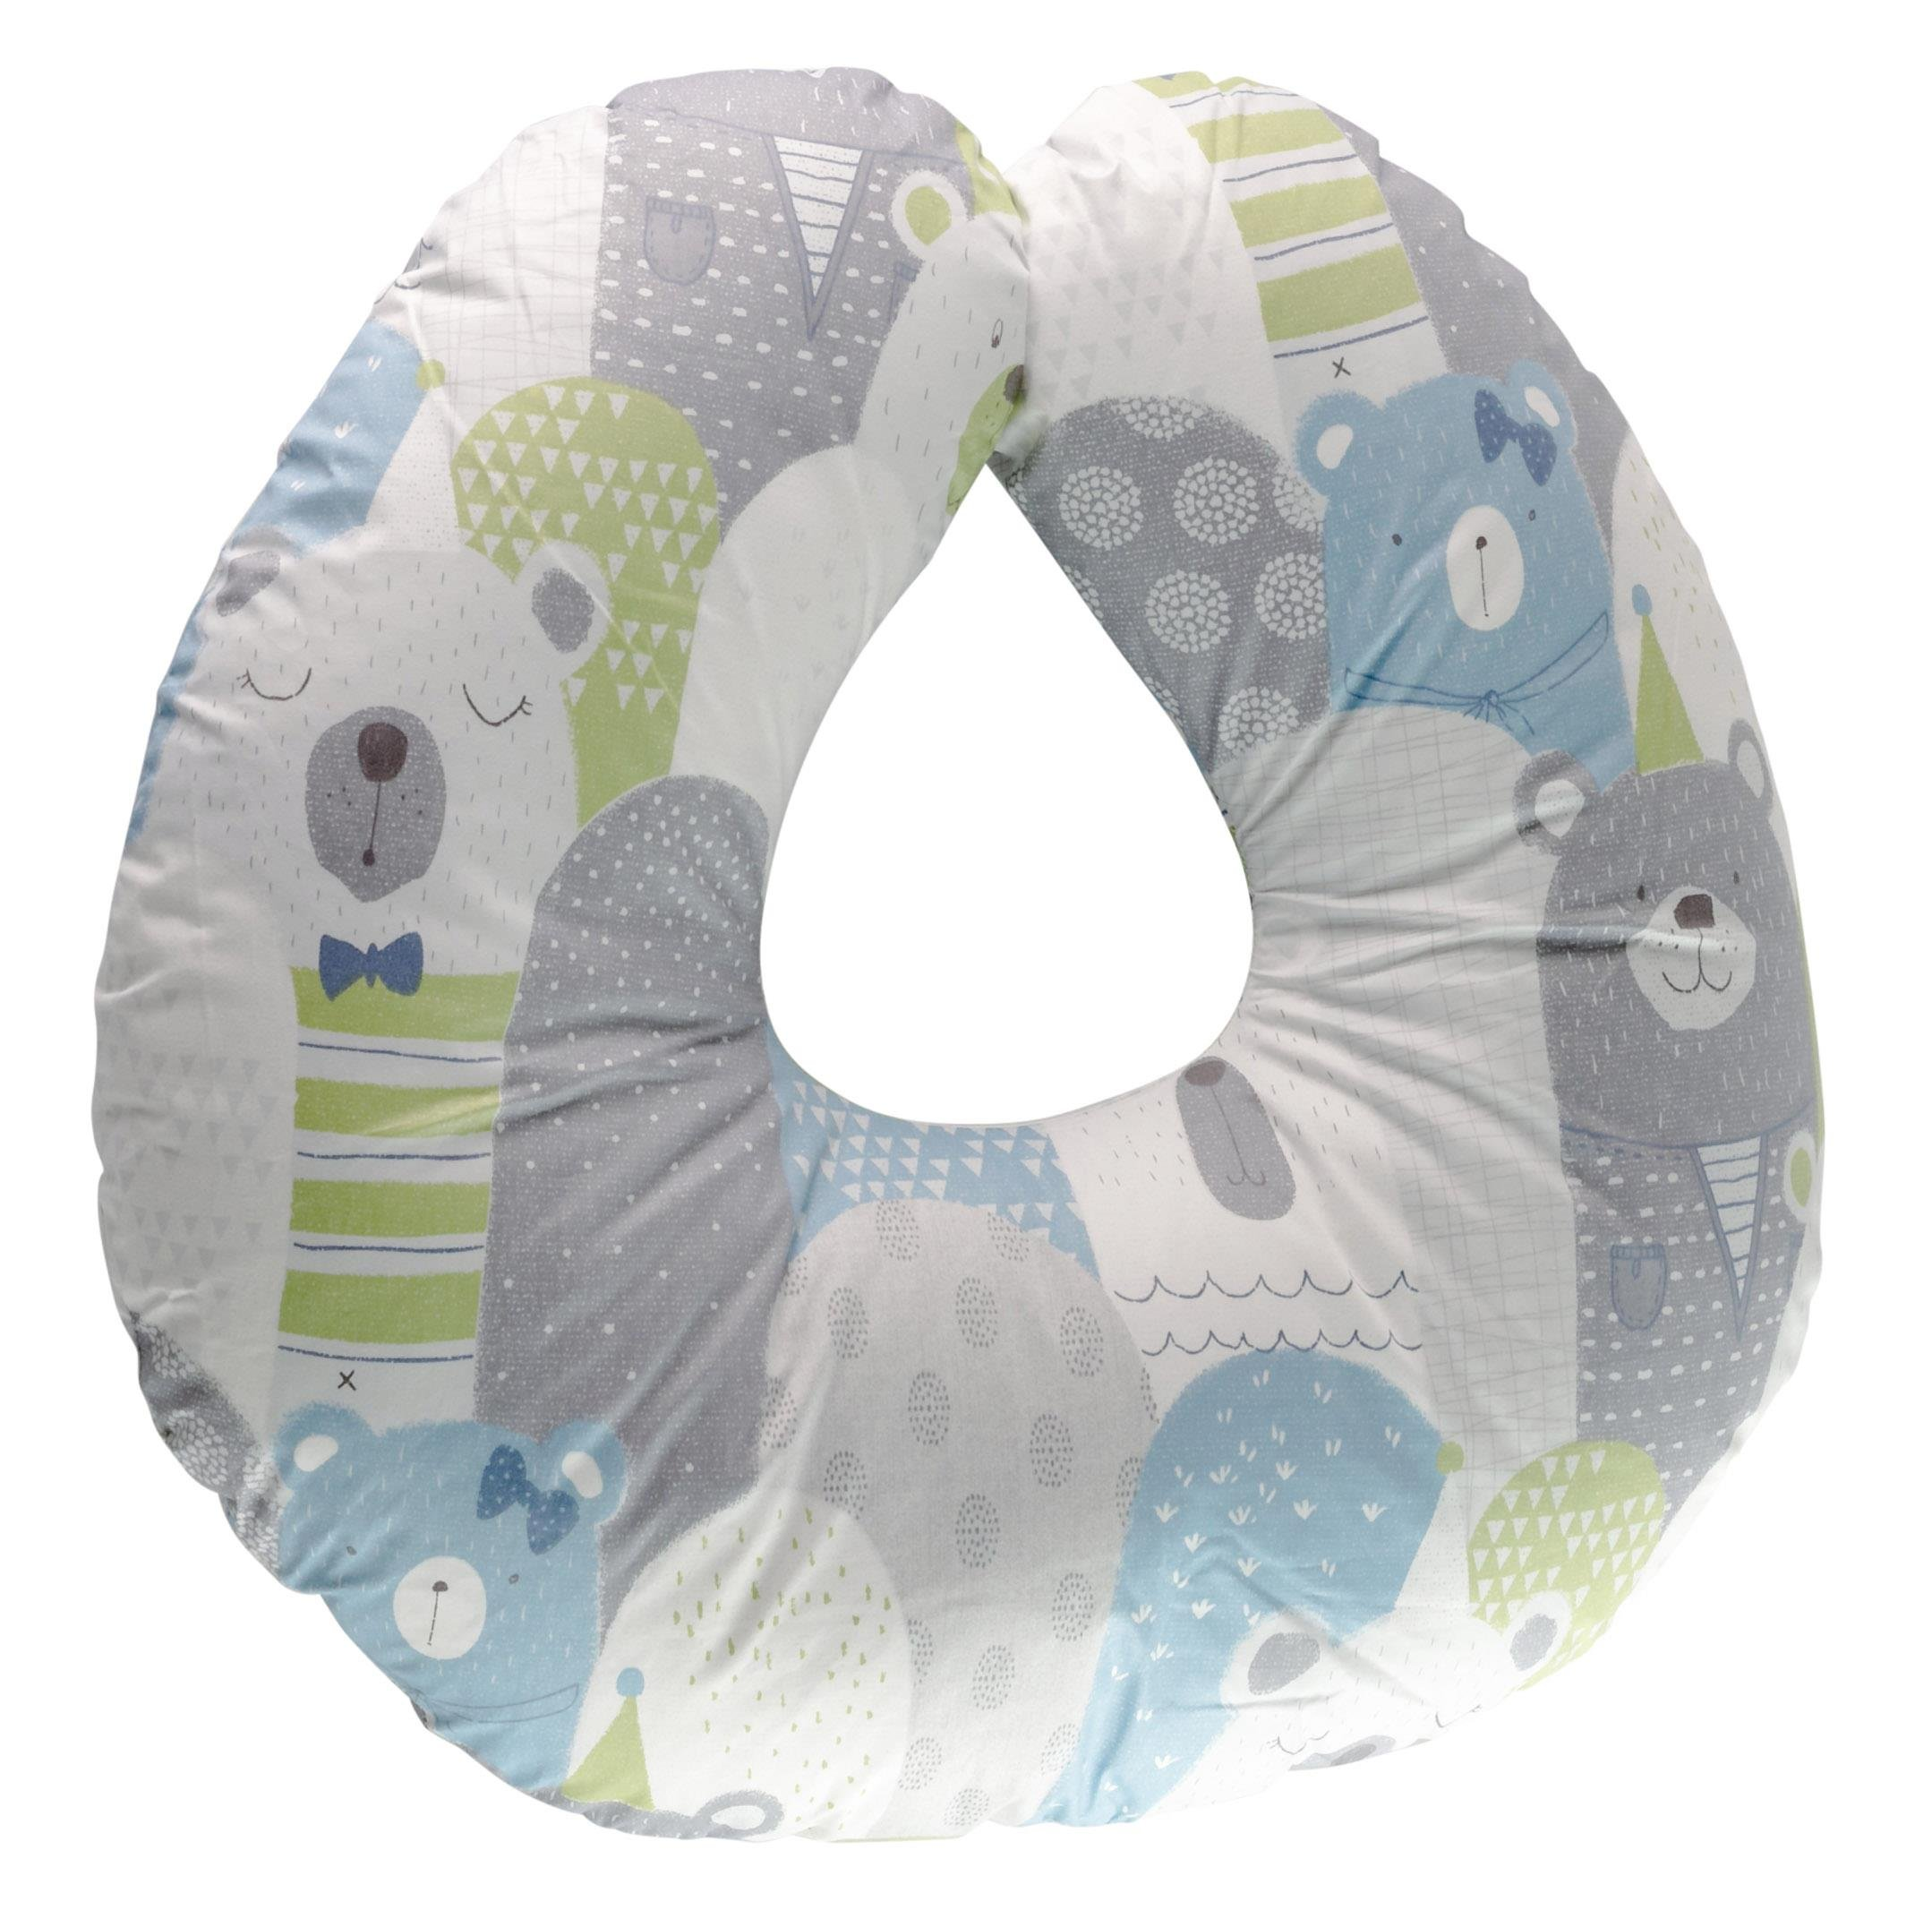 Extra-Soft Breastfeeding Baby Support Pillow w/100% Hypoallergenic Removable Bamboo Cover&Slipcover | Antibacterial Newborn Infant Feeding Cushion | Portable for Travel | Nursing Pillow for Boys&Girls